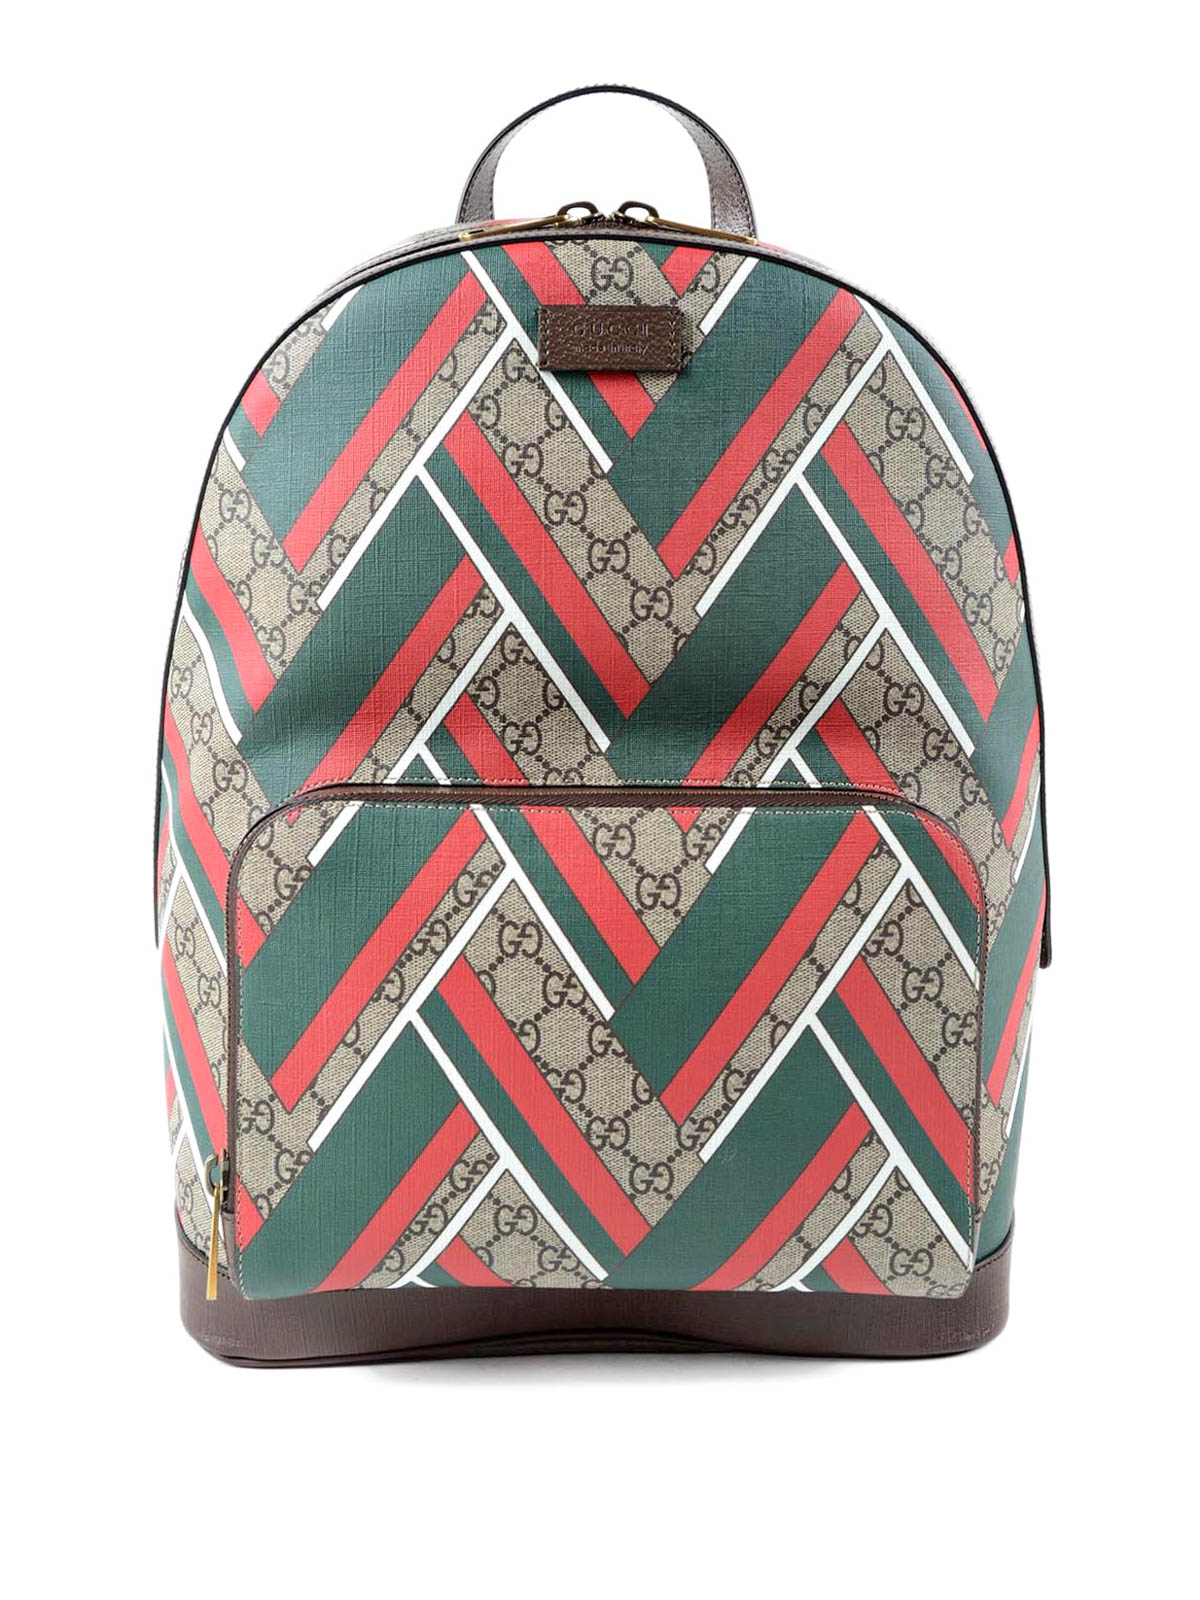 Gucci - GG Supreme and Chevron backpack - backpacks - 406370 K1MIT 8559 947c0aae9dab9